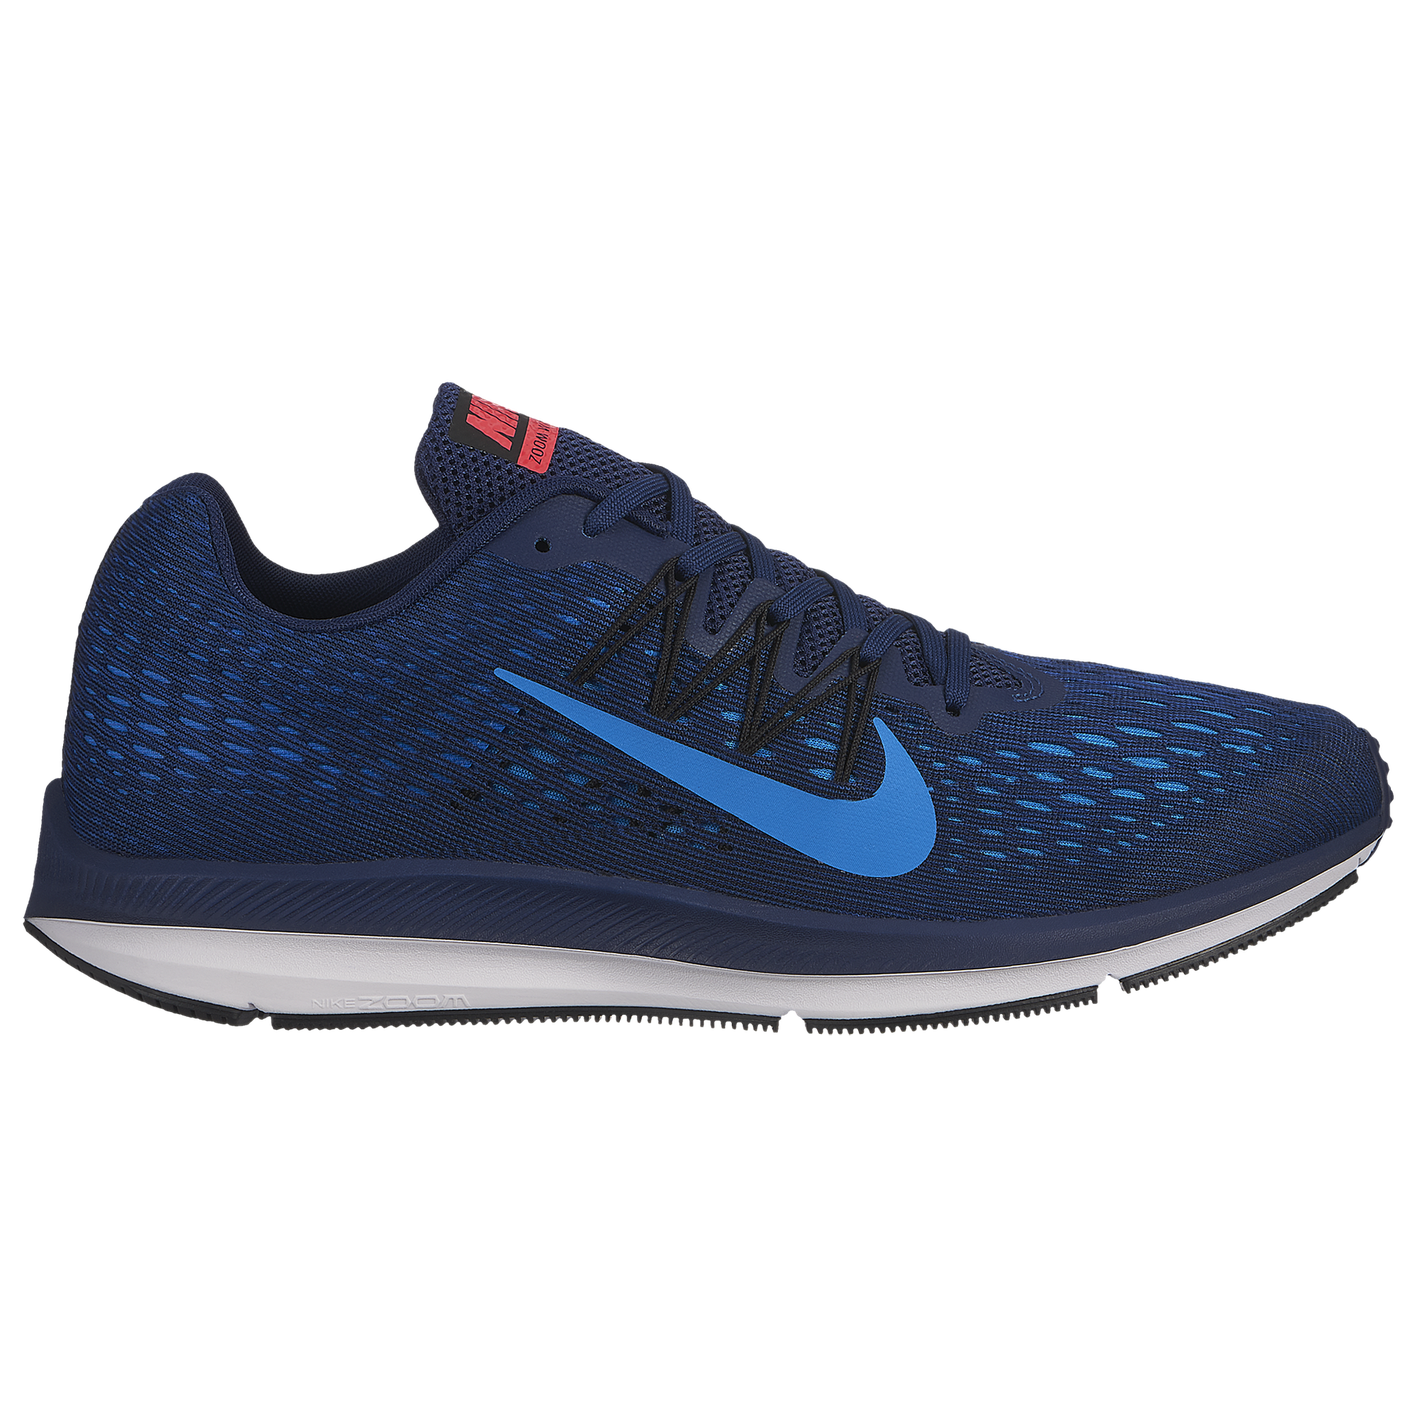 202074b5cdc Nike Zoom Winflo 5 - Men s - Running - Shoes - Blue Void Photo Blue ...